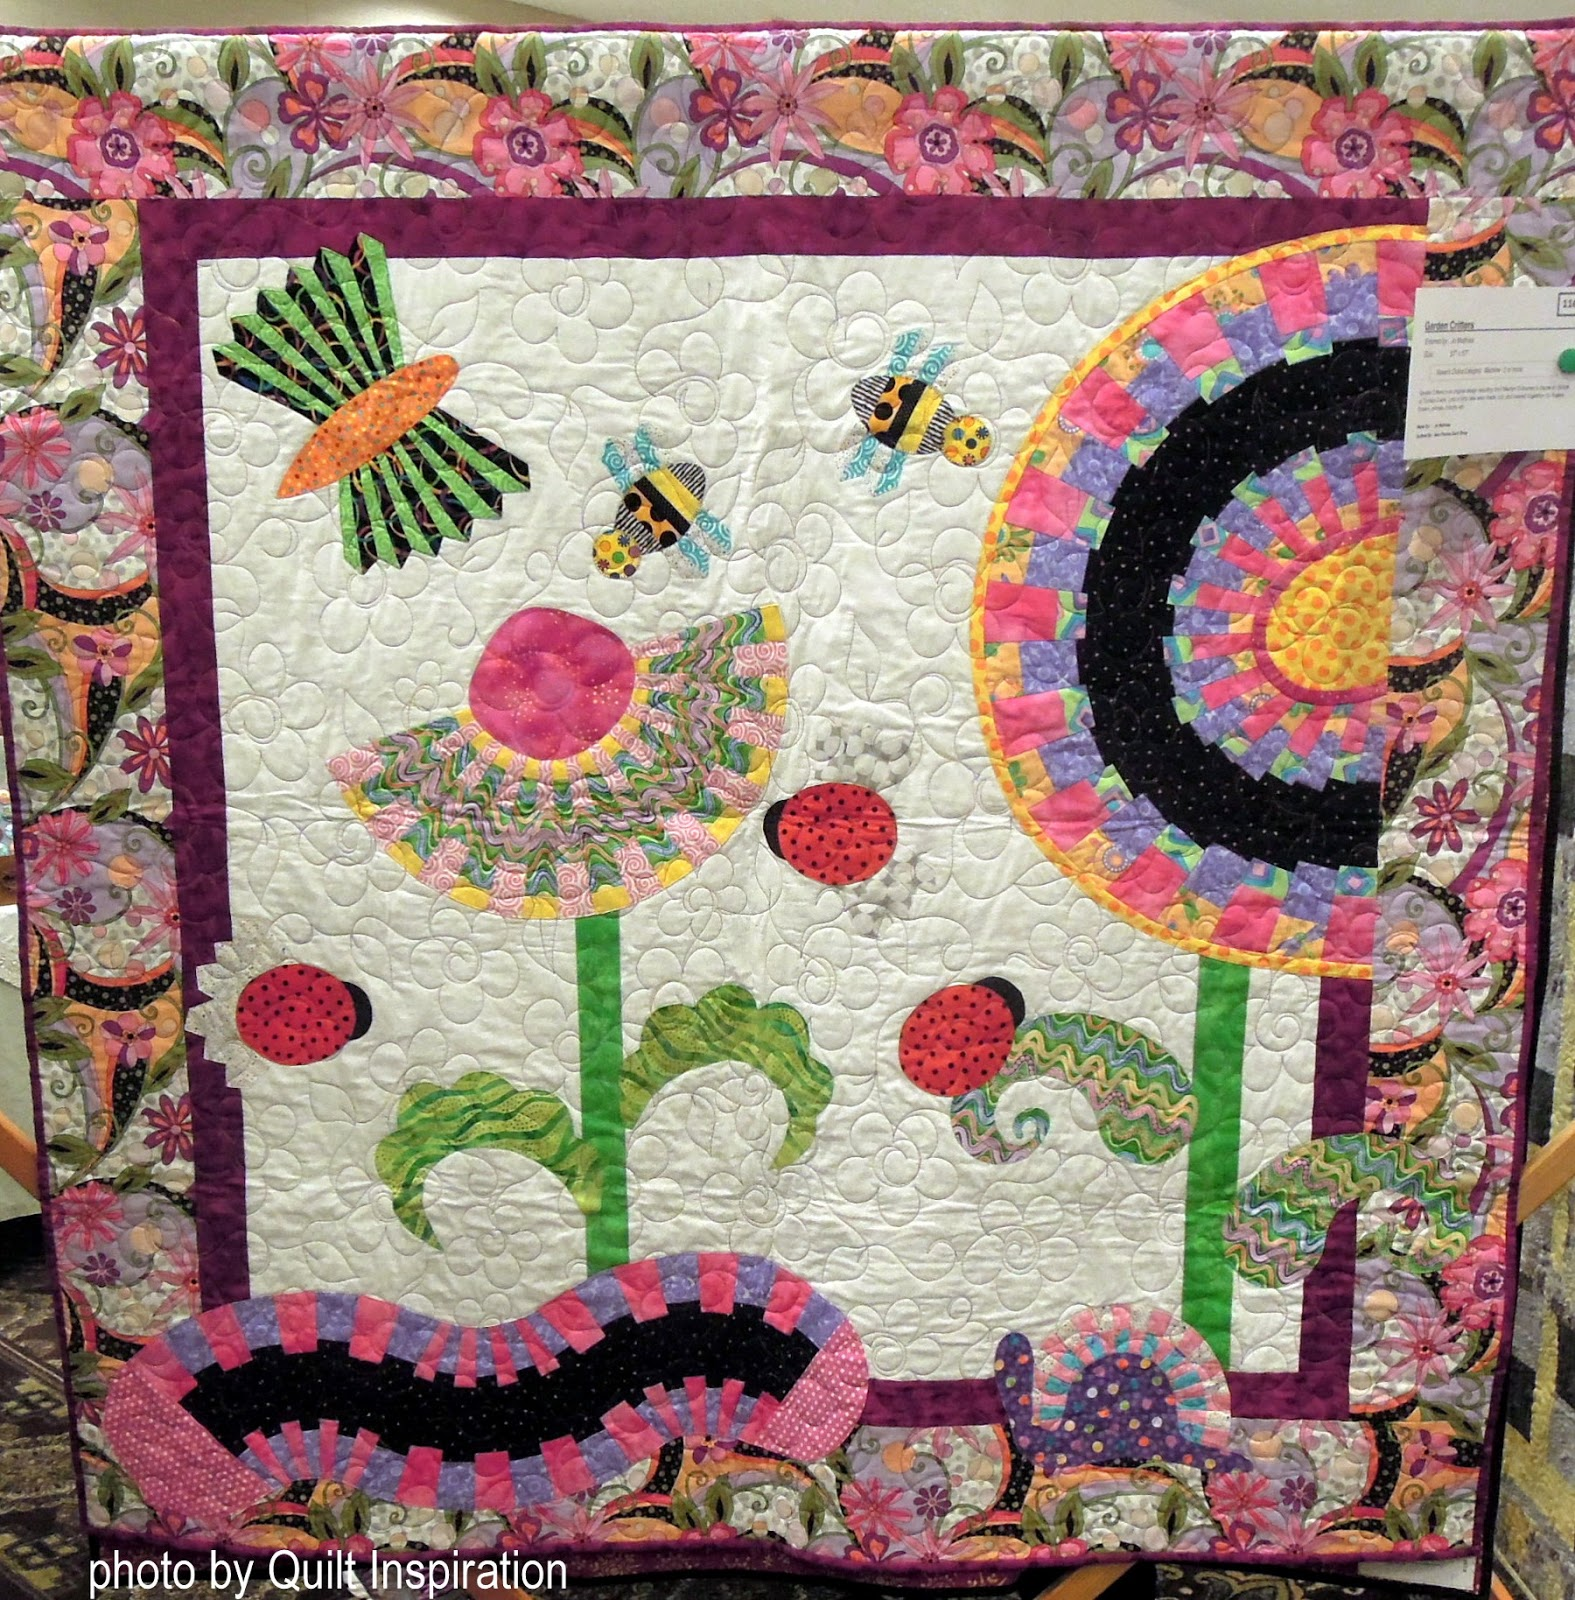 Critter And Creature Quilts Quilt Inspiration Bloglovin